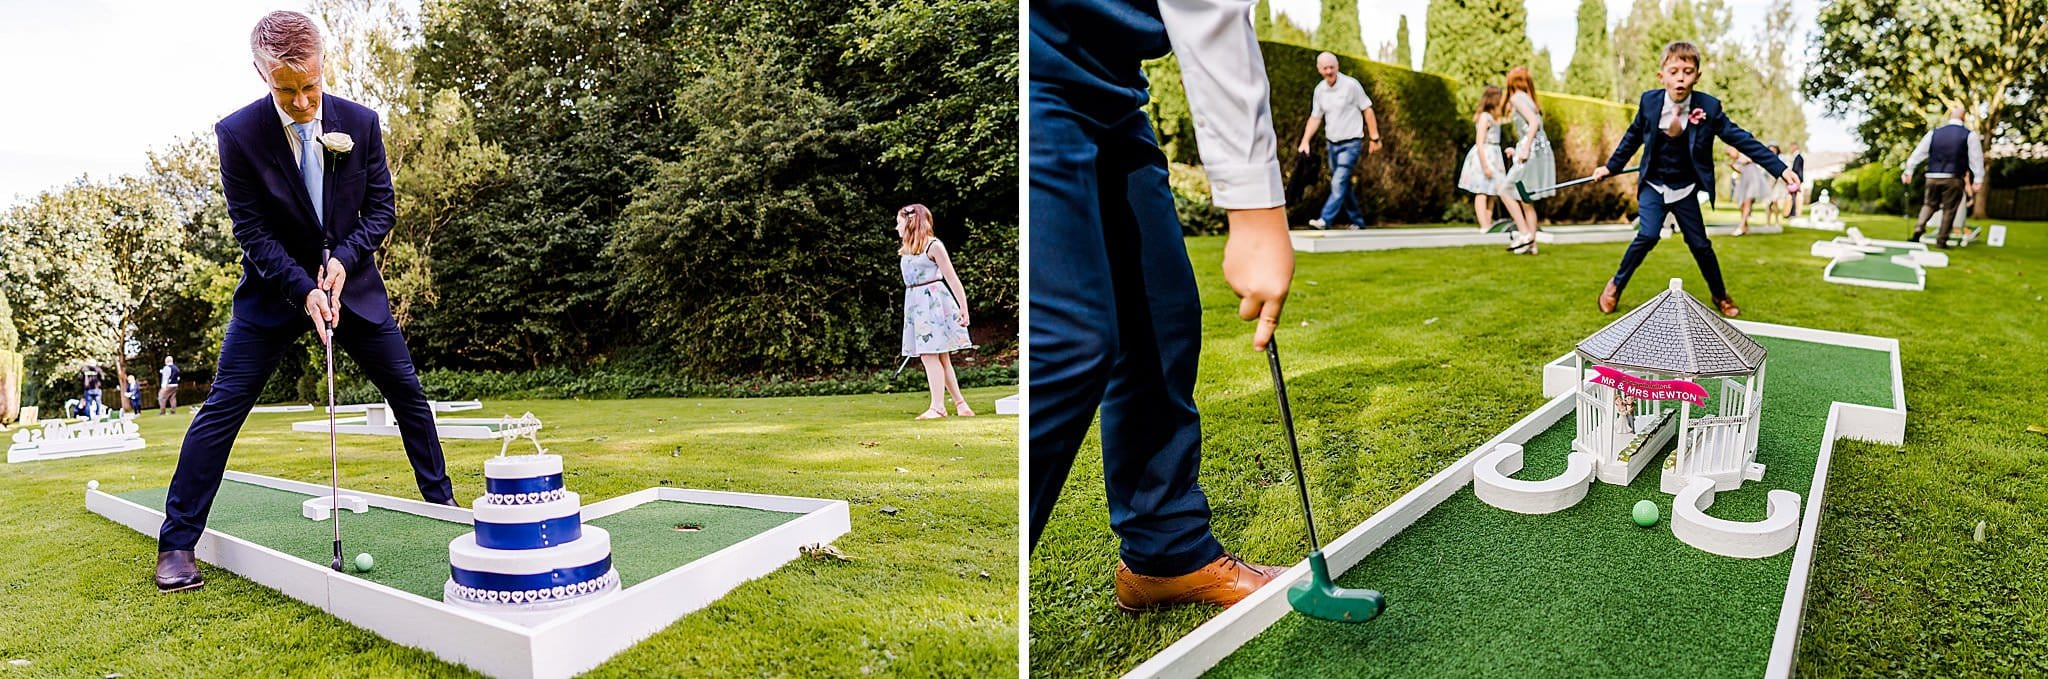 Wedding guests all play on miniature golf course at Newton House Barns